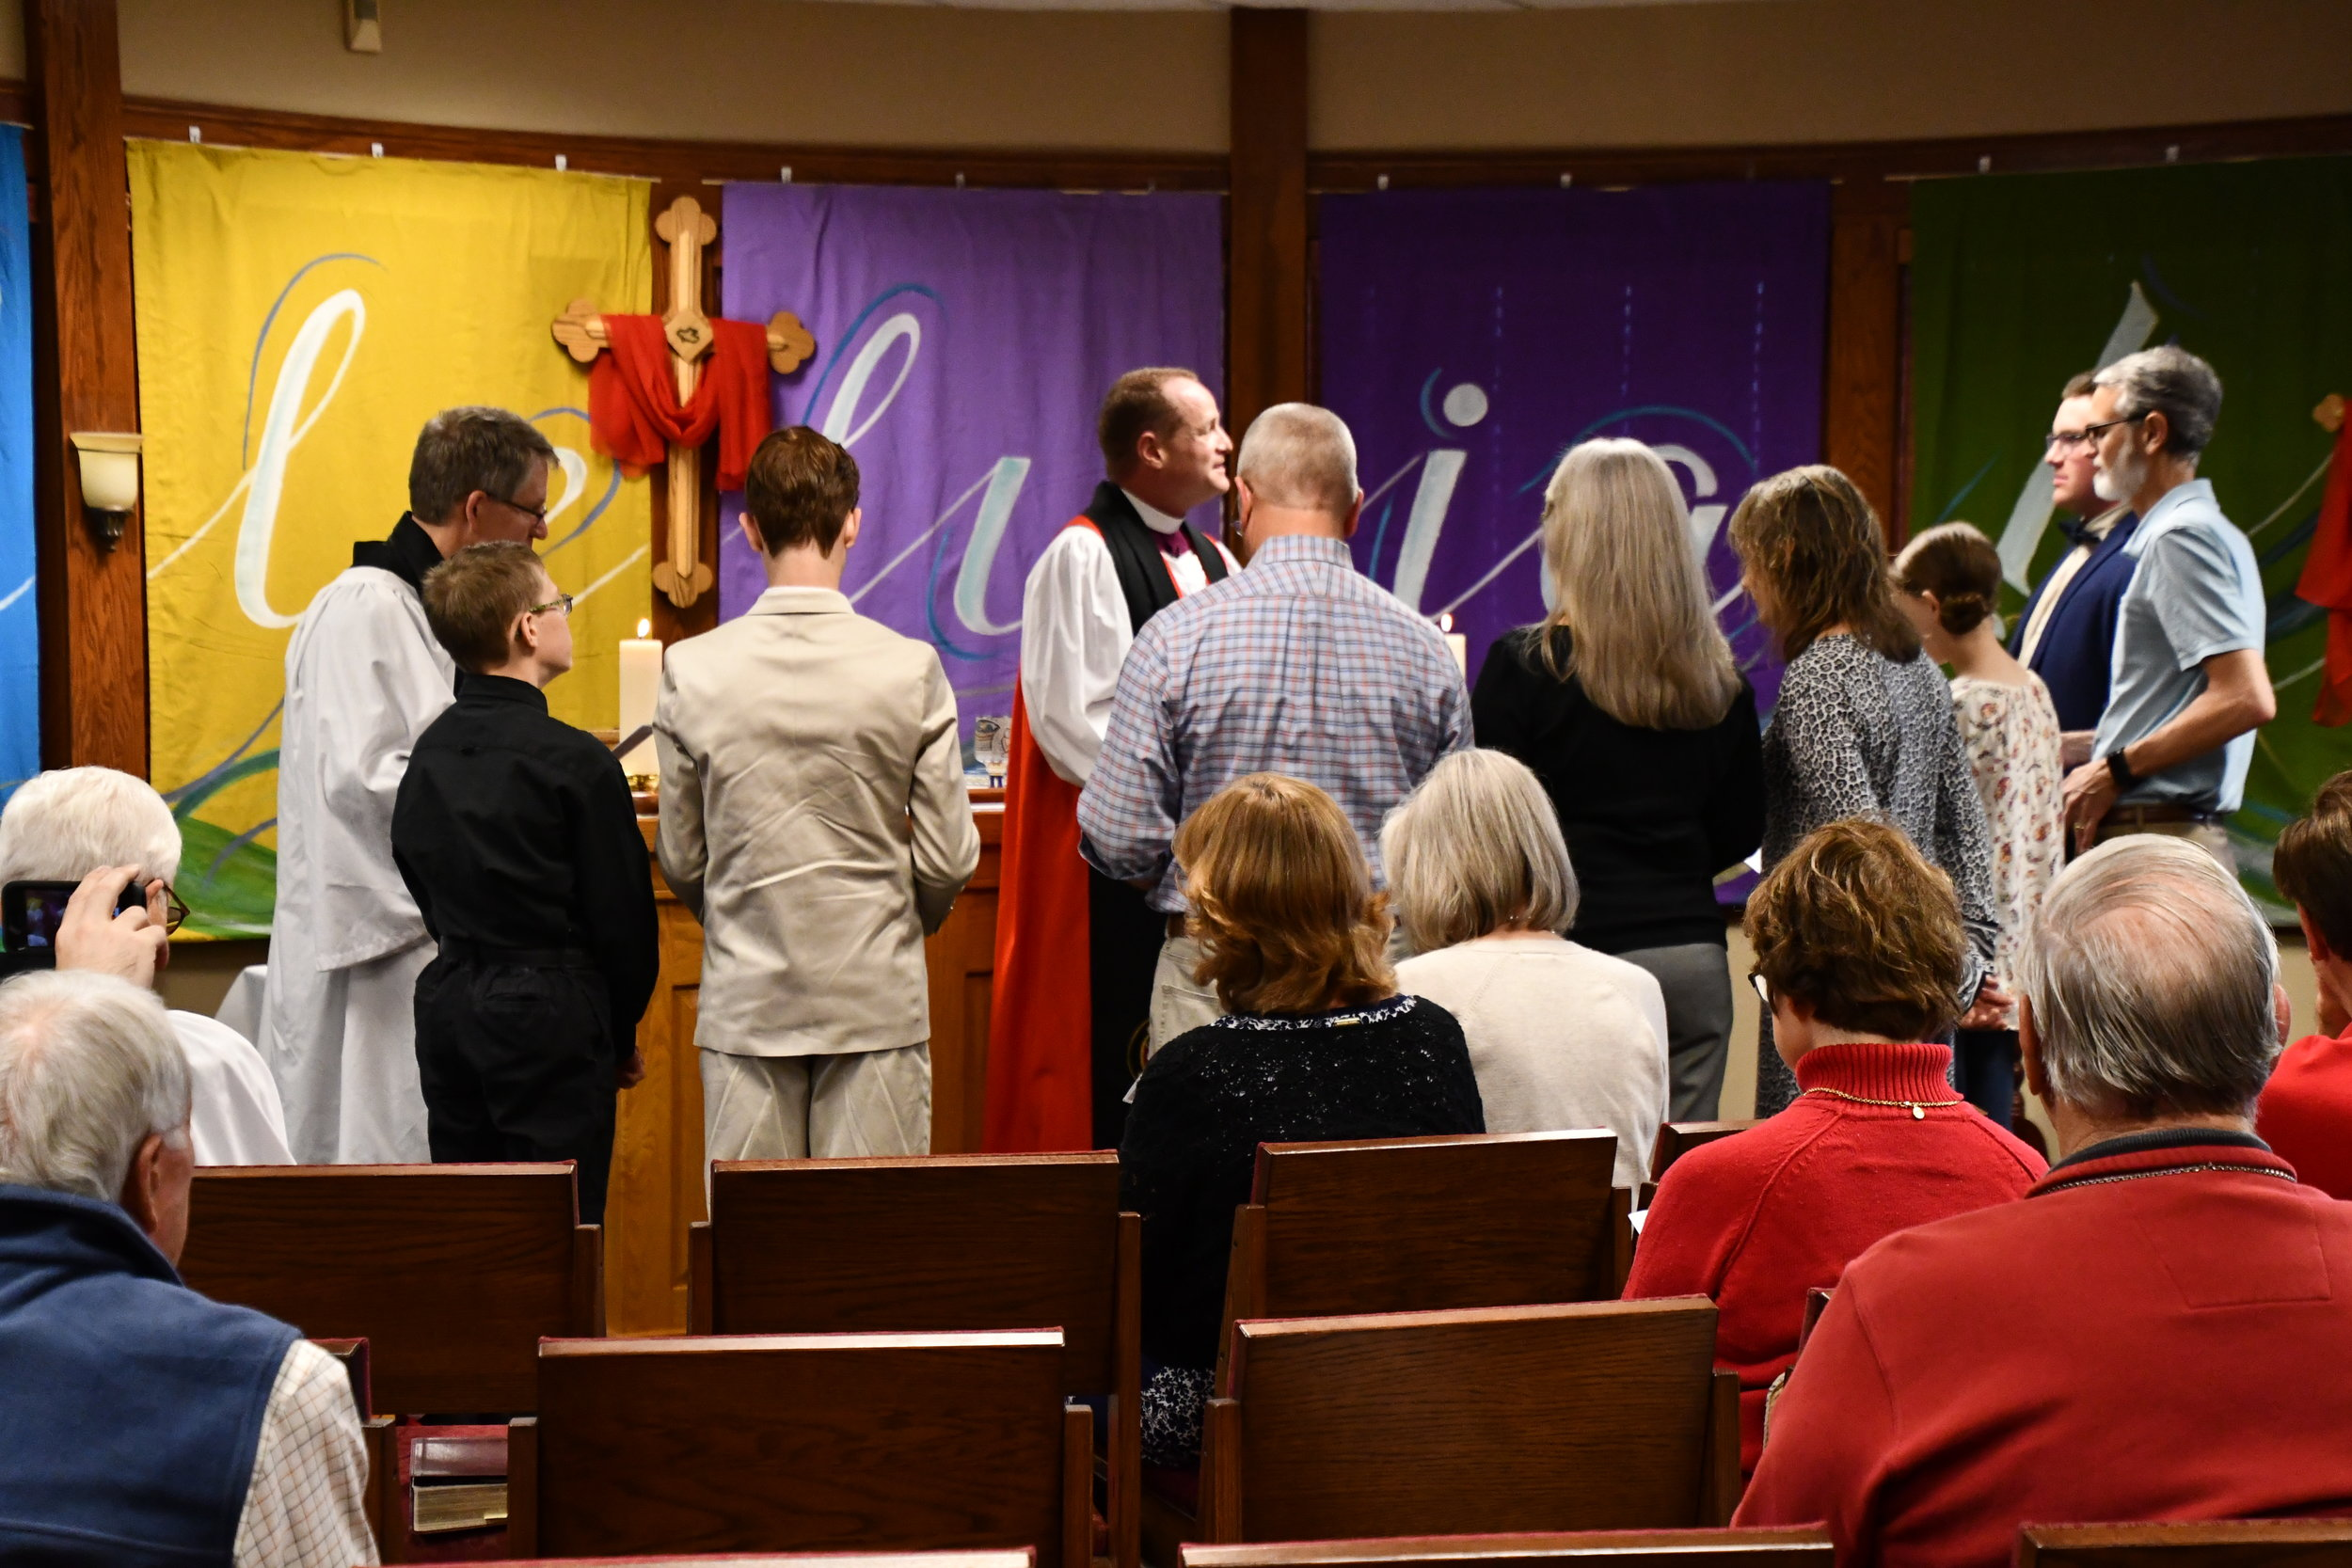 Confirmation is a powerful service and experience officiated by Bishop Ken Ross.